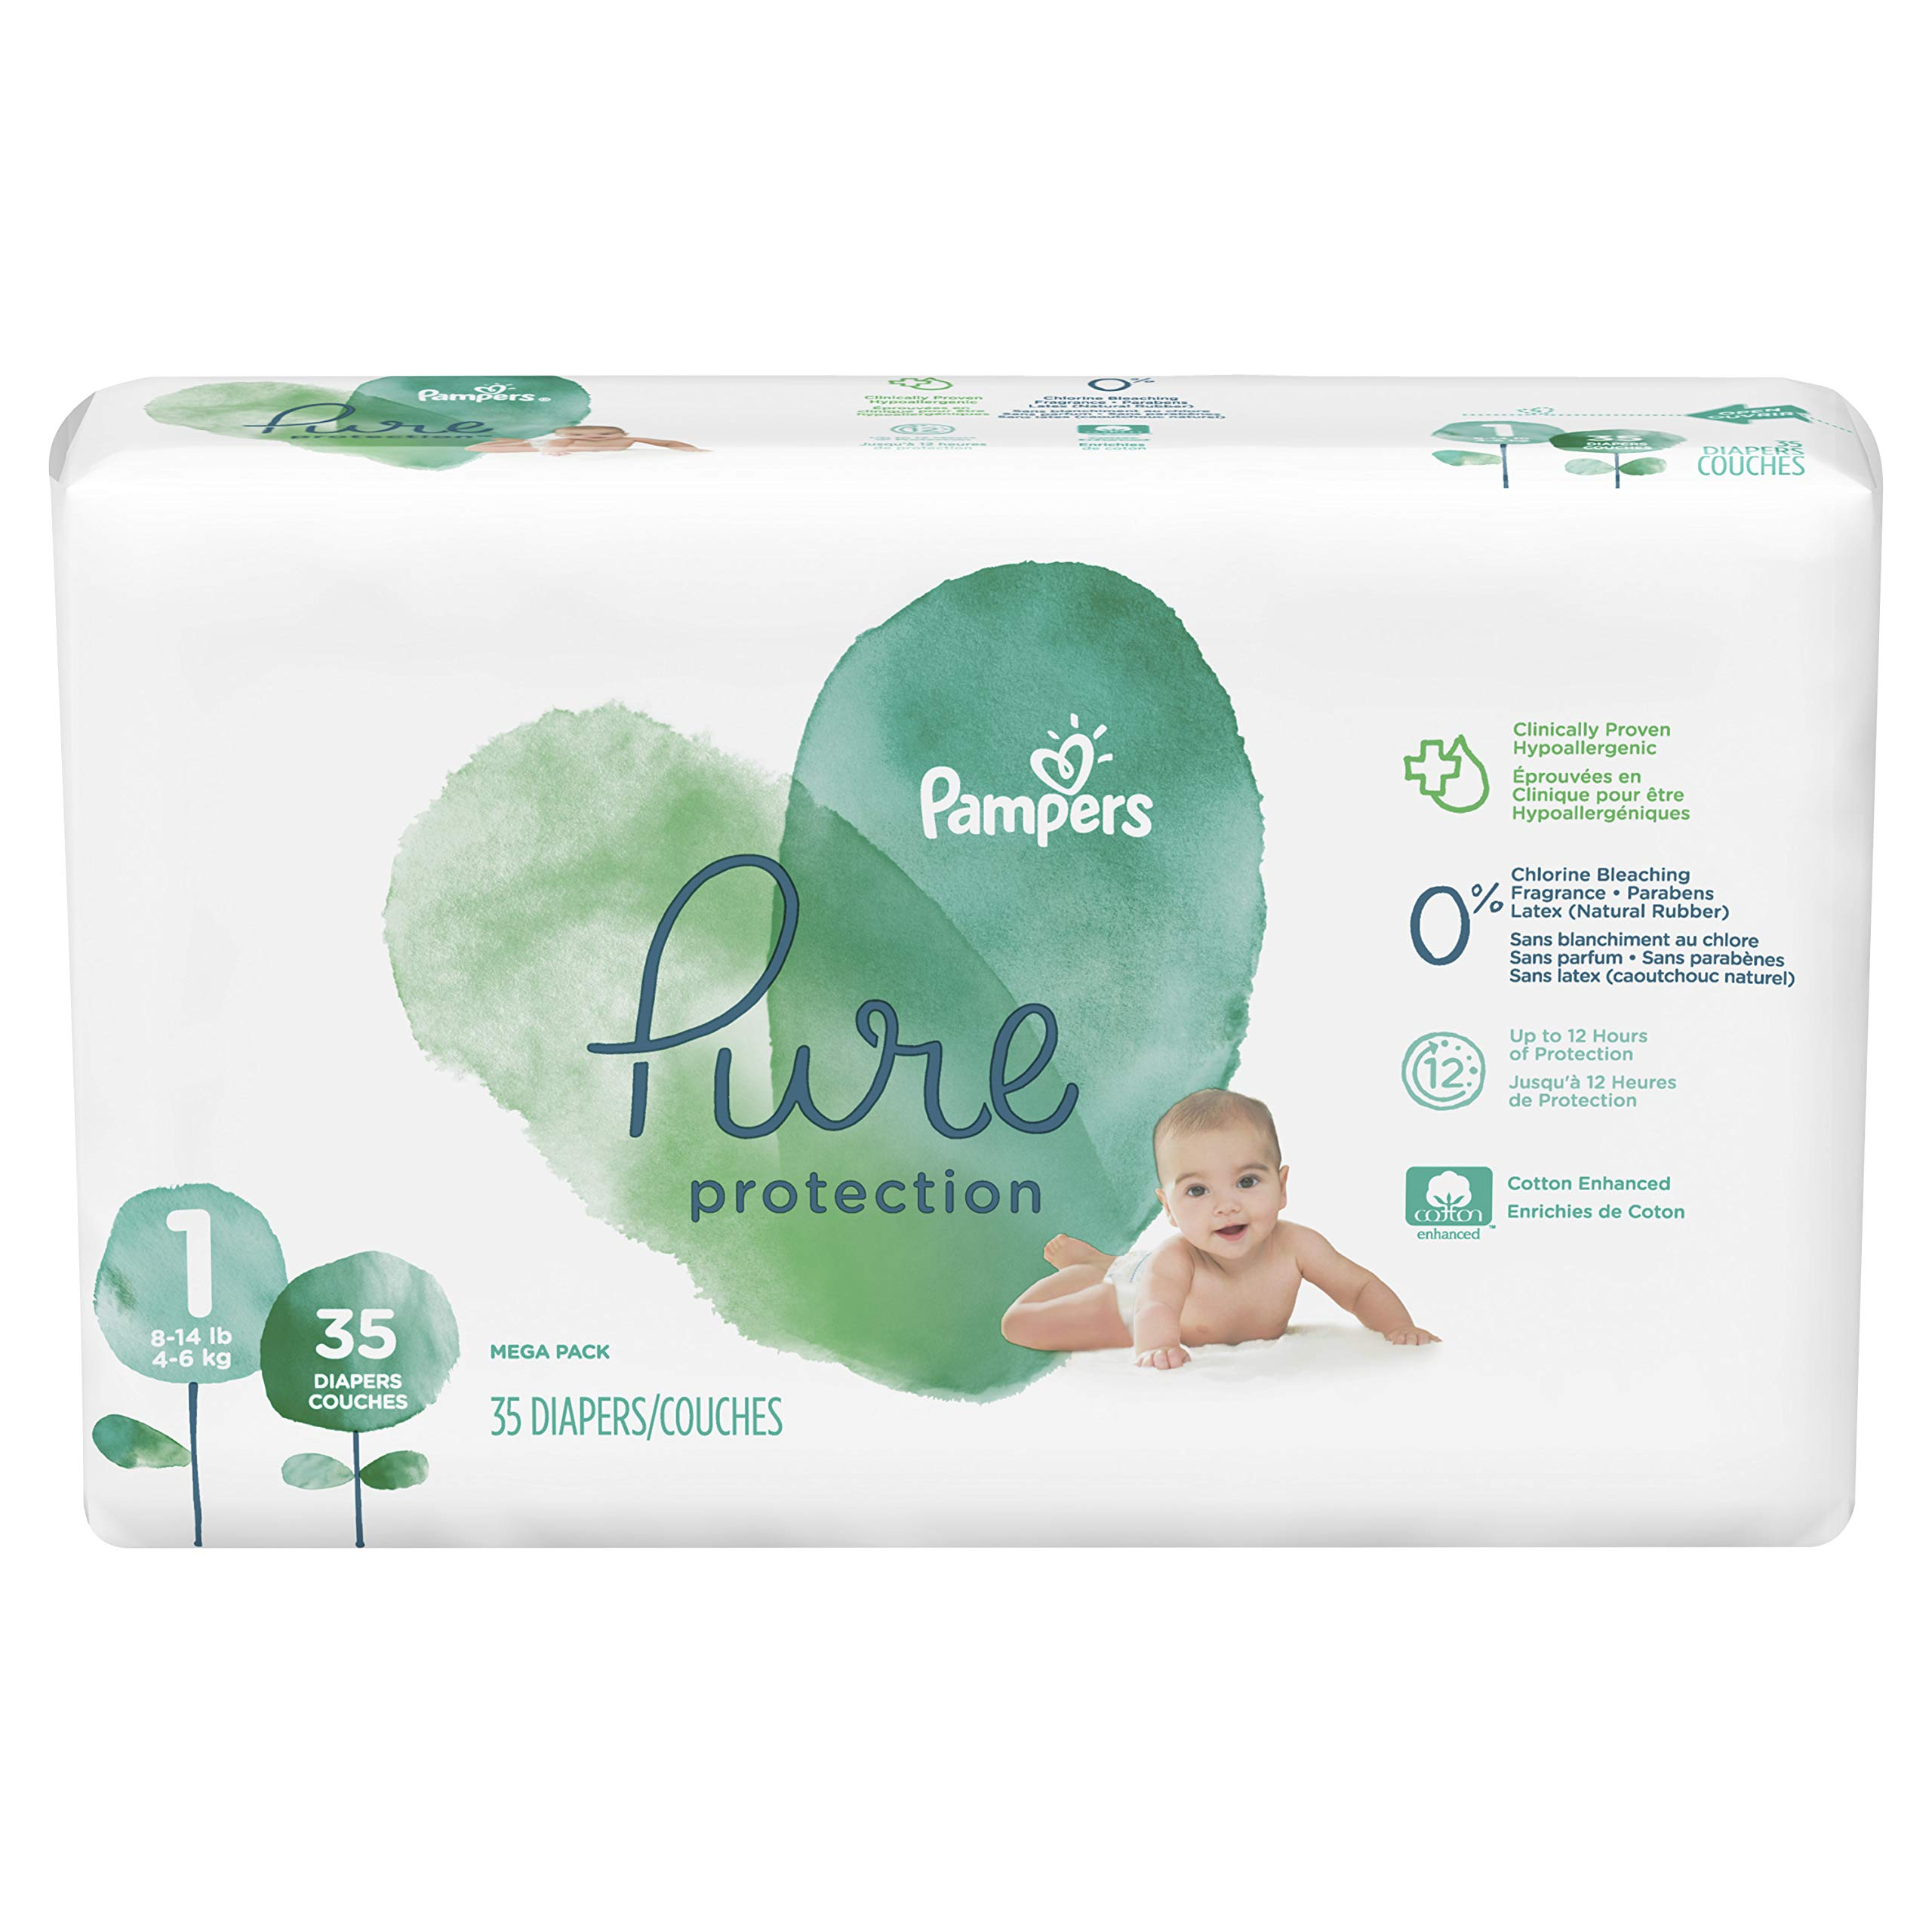 Diapers Newborn/Size 1 (8-14 lb), 35 Count - Pampers Pure Protection Disposable Baby Diapers, Hypoallergenic and Unscented Protection, Mega Pack